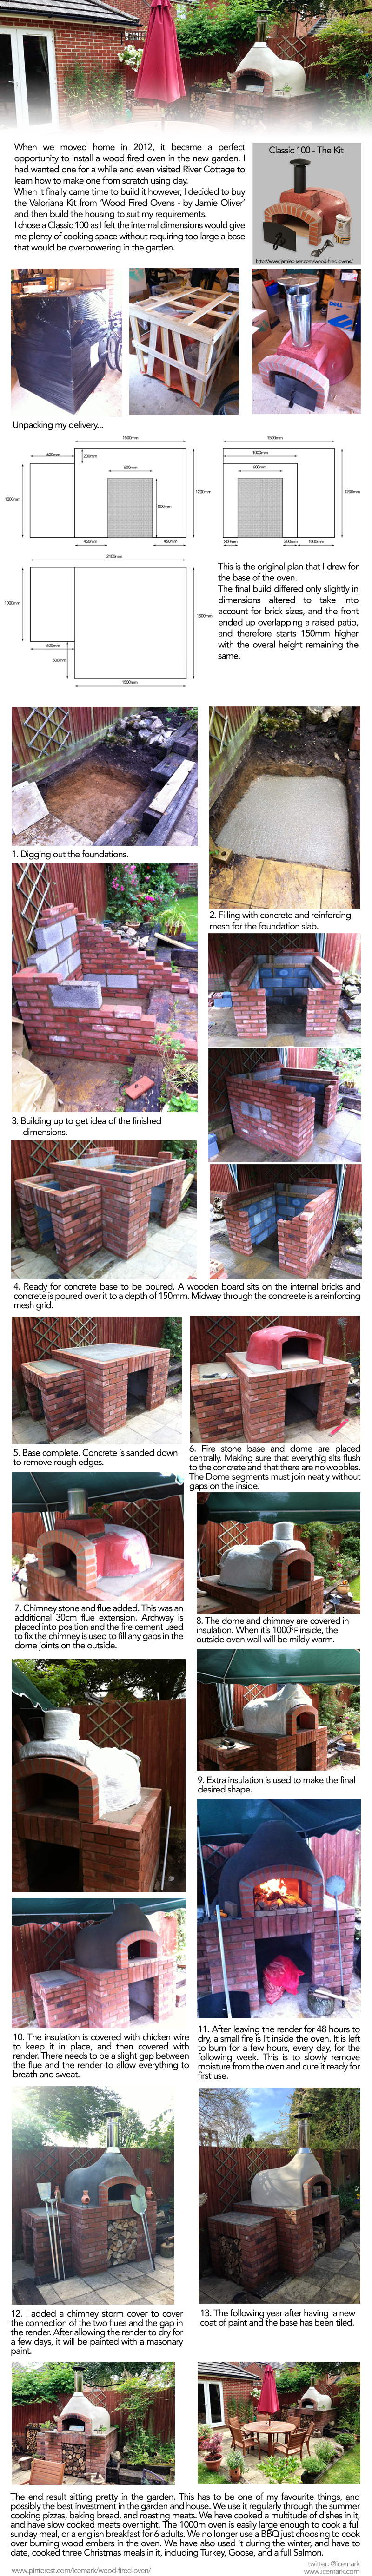 Wood-Oven-Building